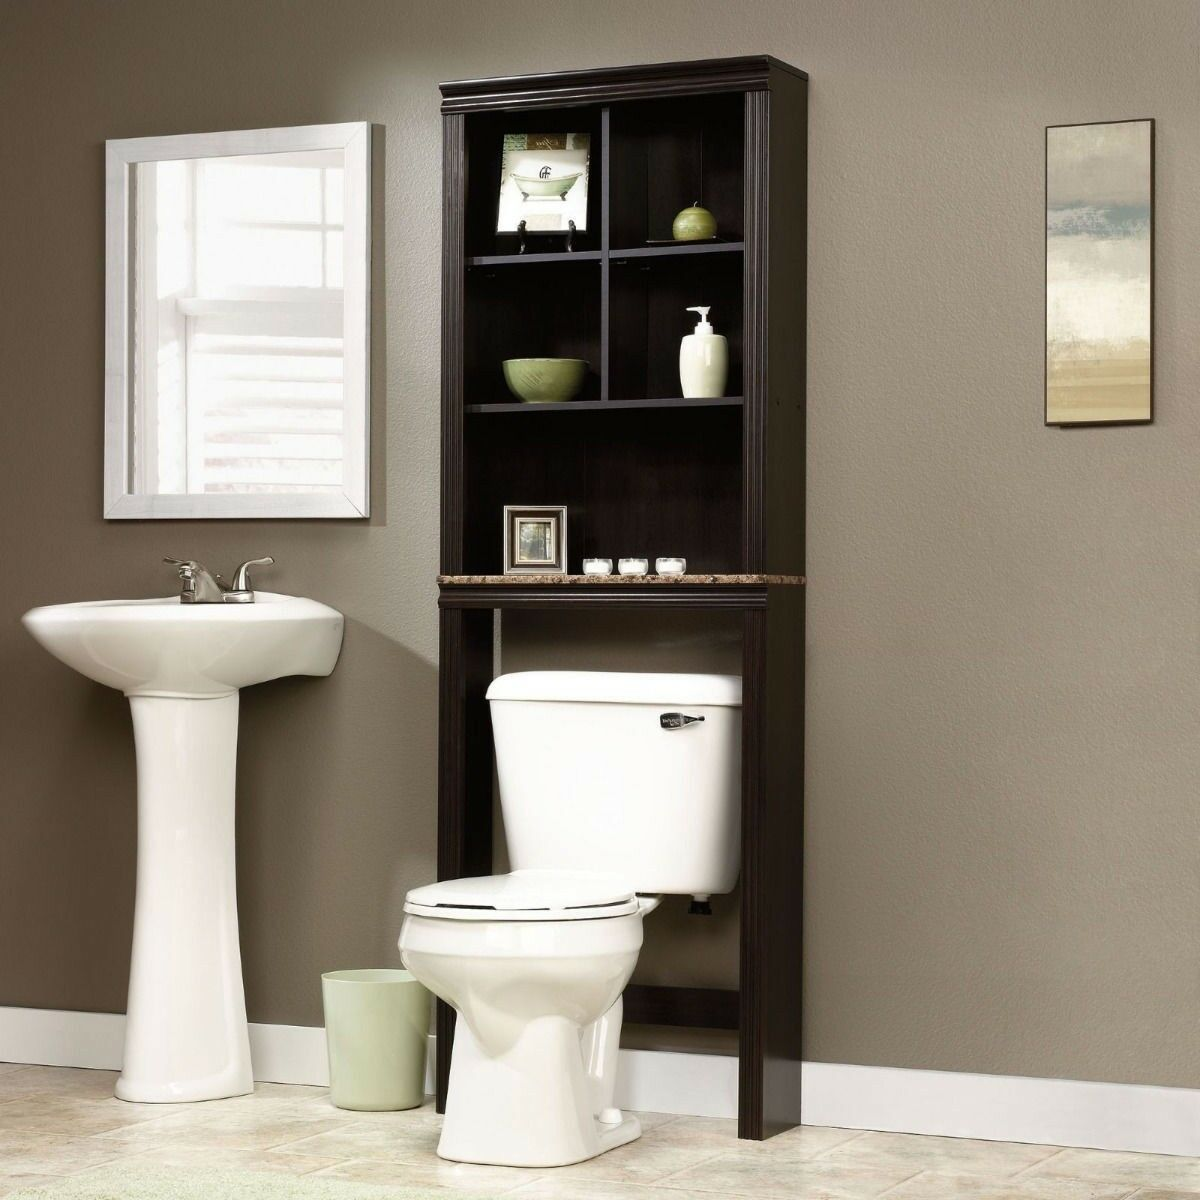 over the toilet cabinet bathroom cabinet toilet shelf space saver storage 31582